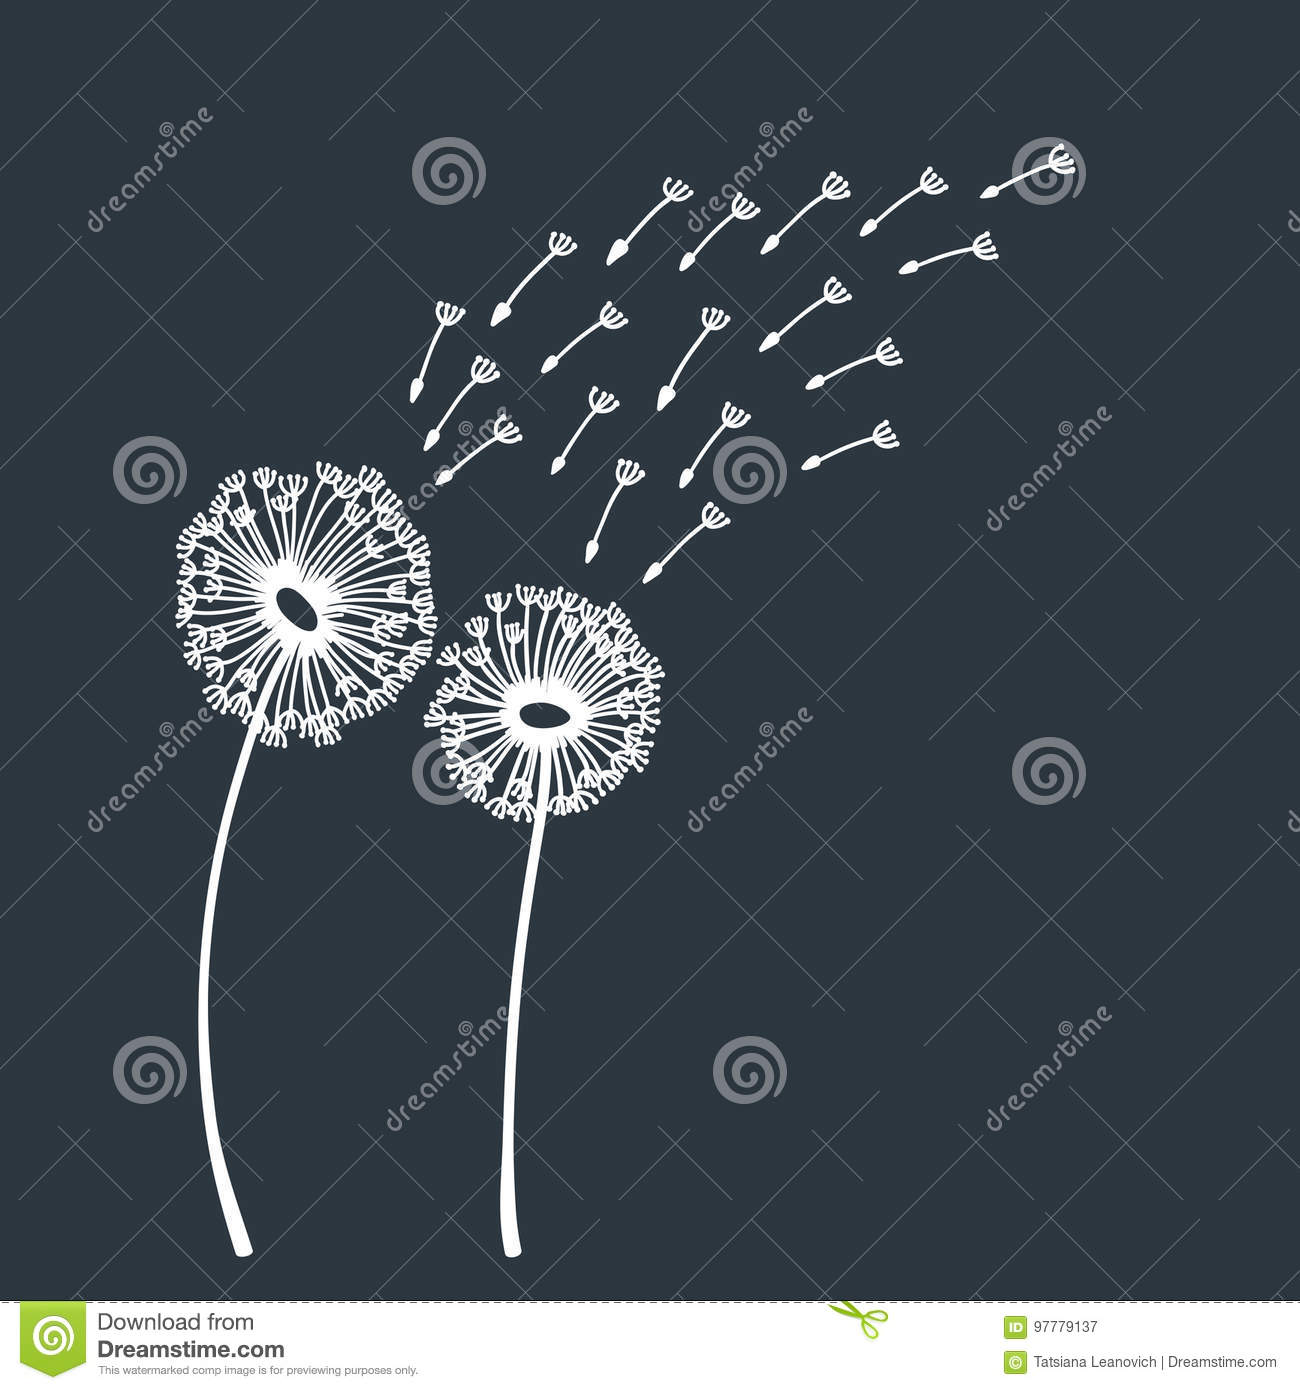 Dandelion blowing silhouette